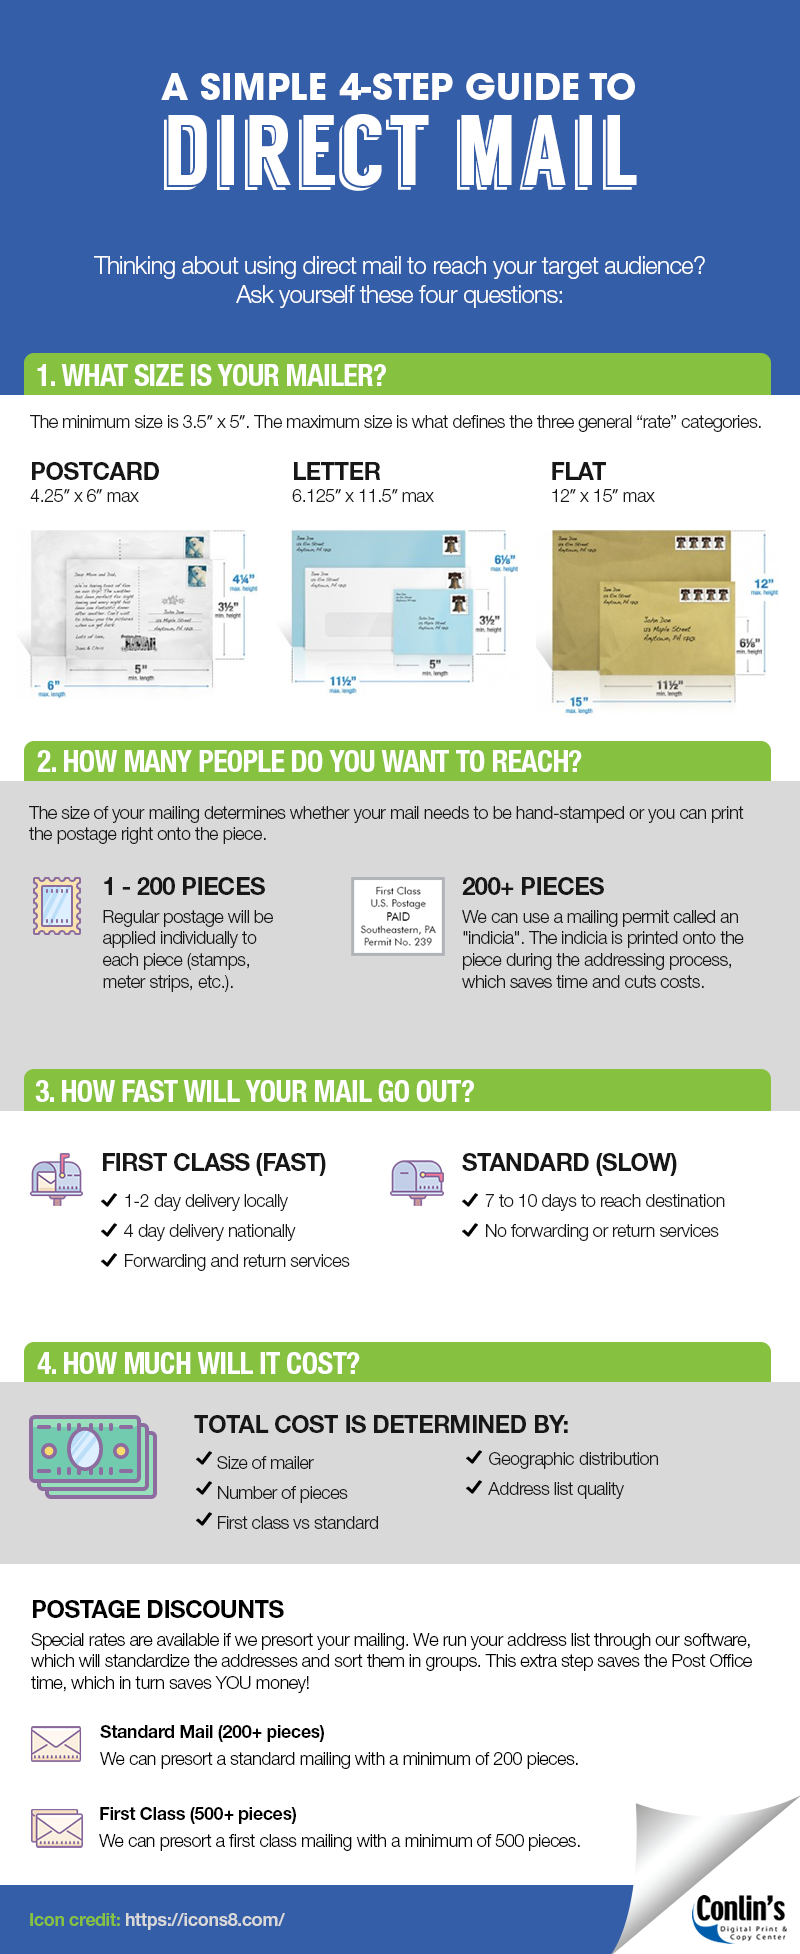 DirectMail_Infographic